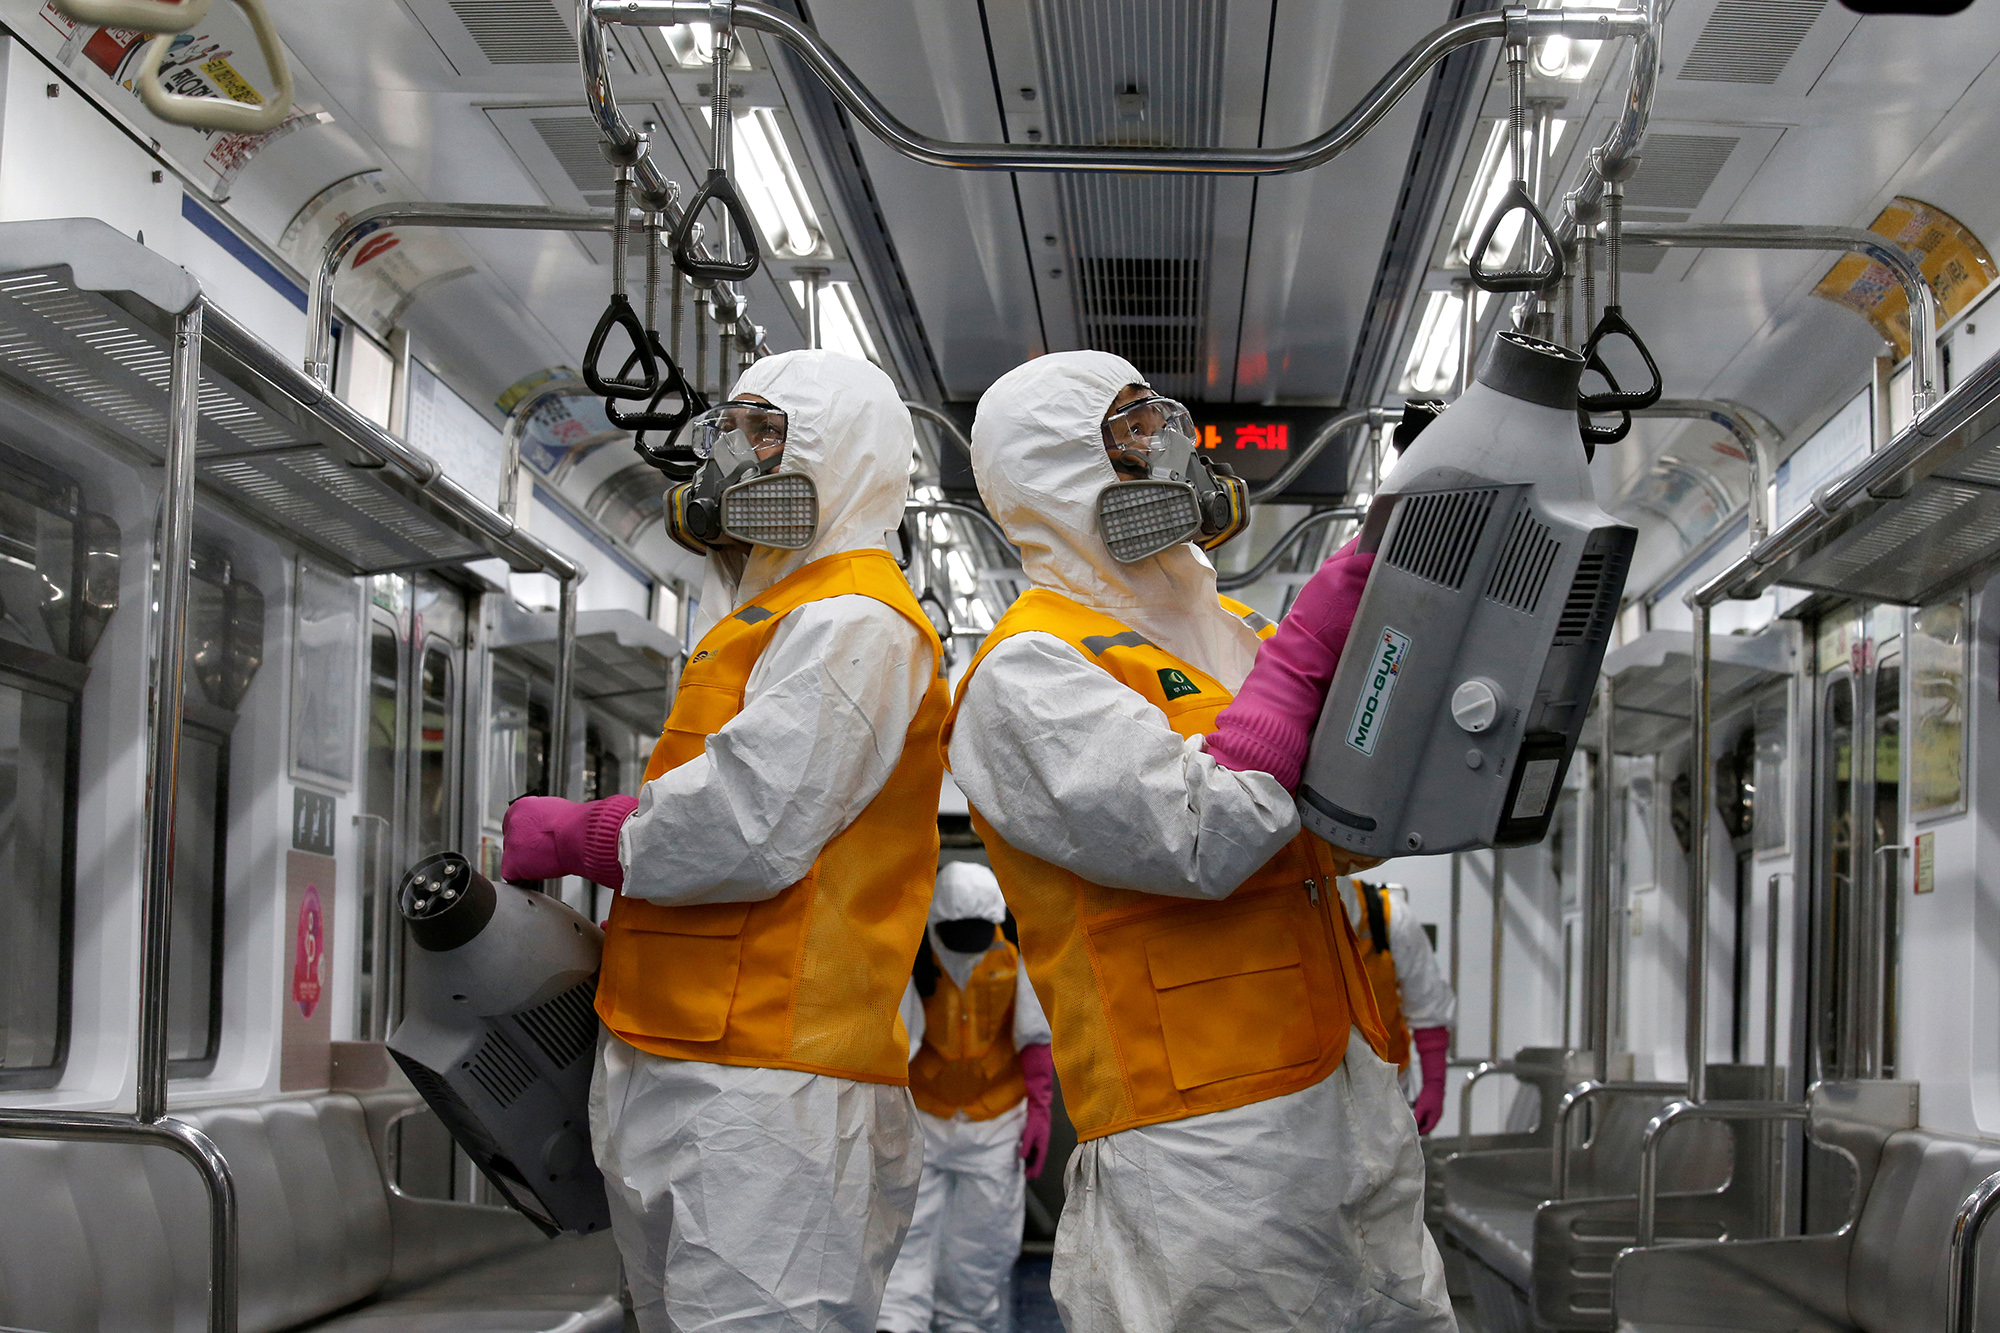 DATE IMPORTED:March 11, 2020Employees from a disinfection service company sanitize a subway car depot amid coronavirus fears in Seoul, South Korea, March 11, 2020. REUTERS/Heo Ran TPX IMAGES OF THE DAY